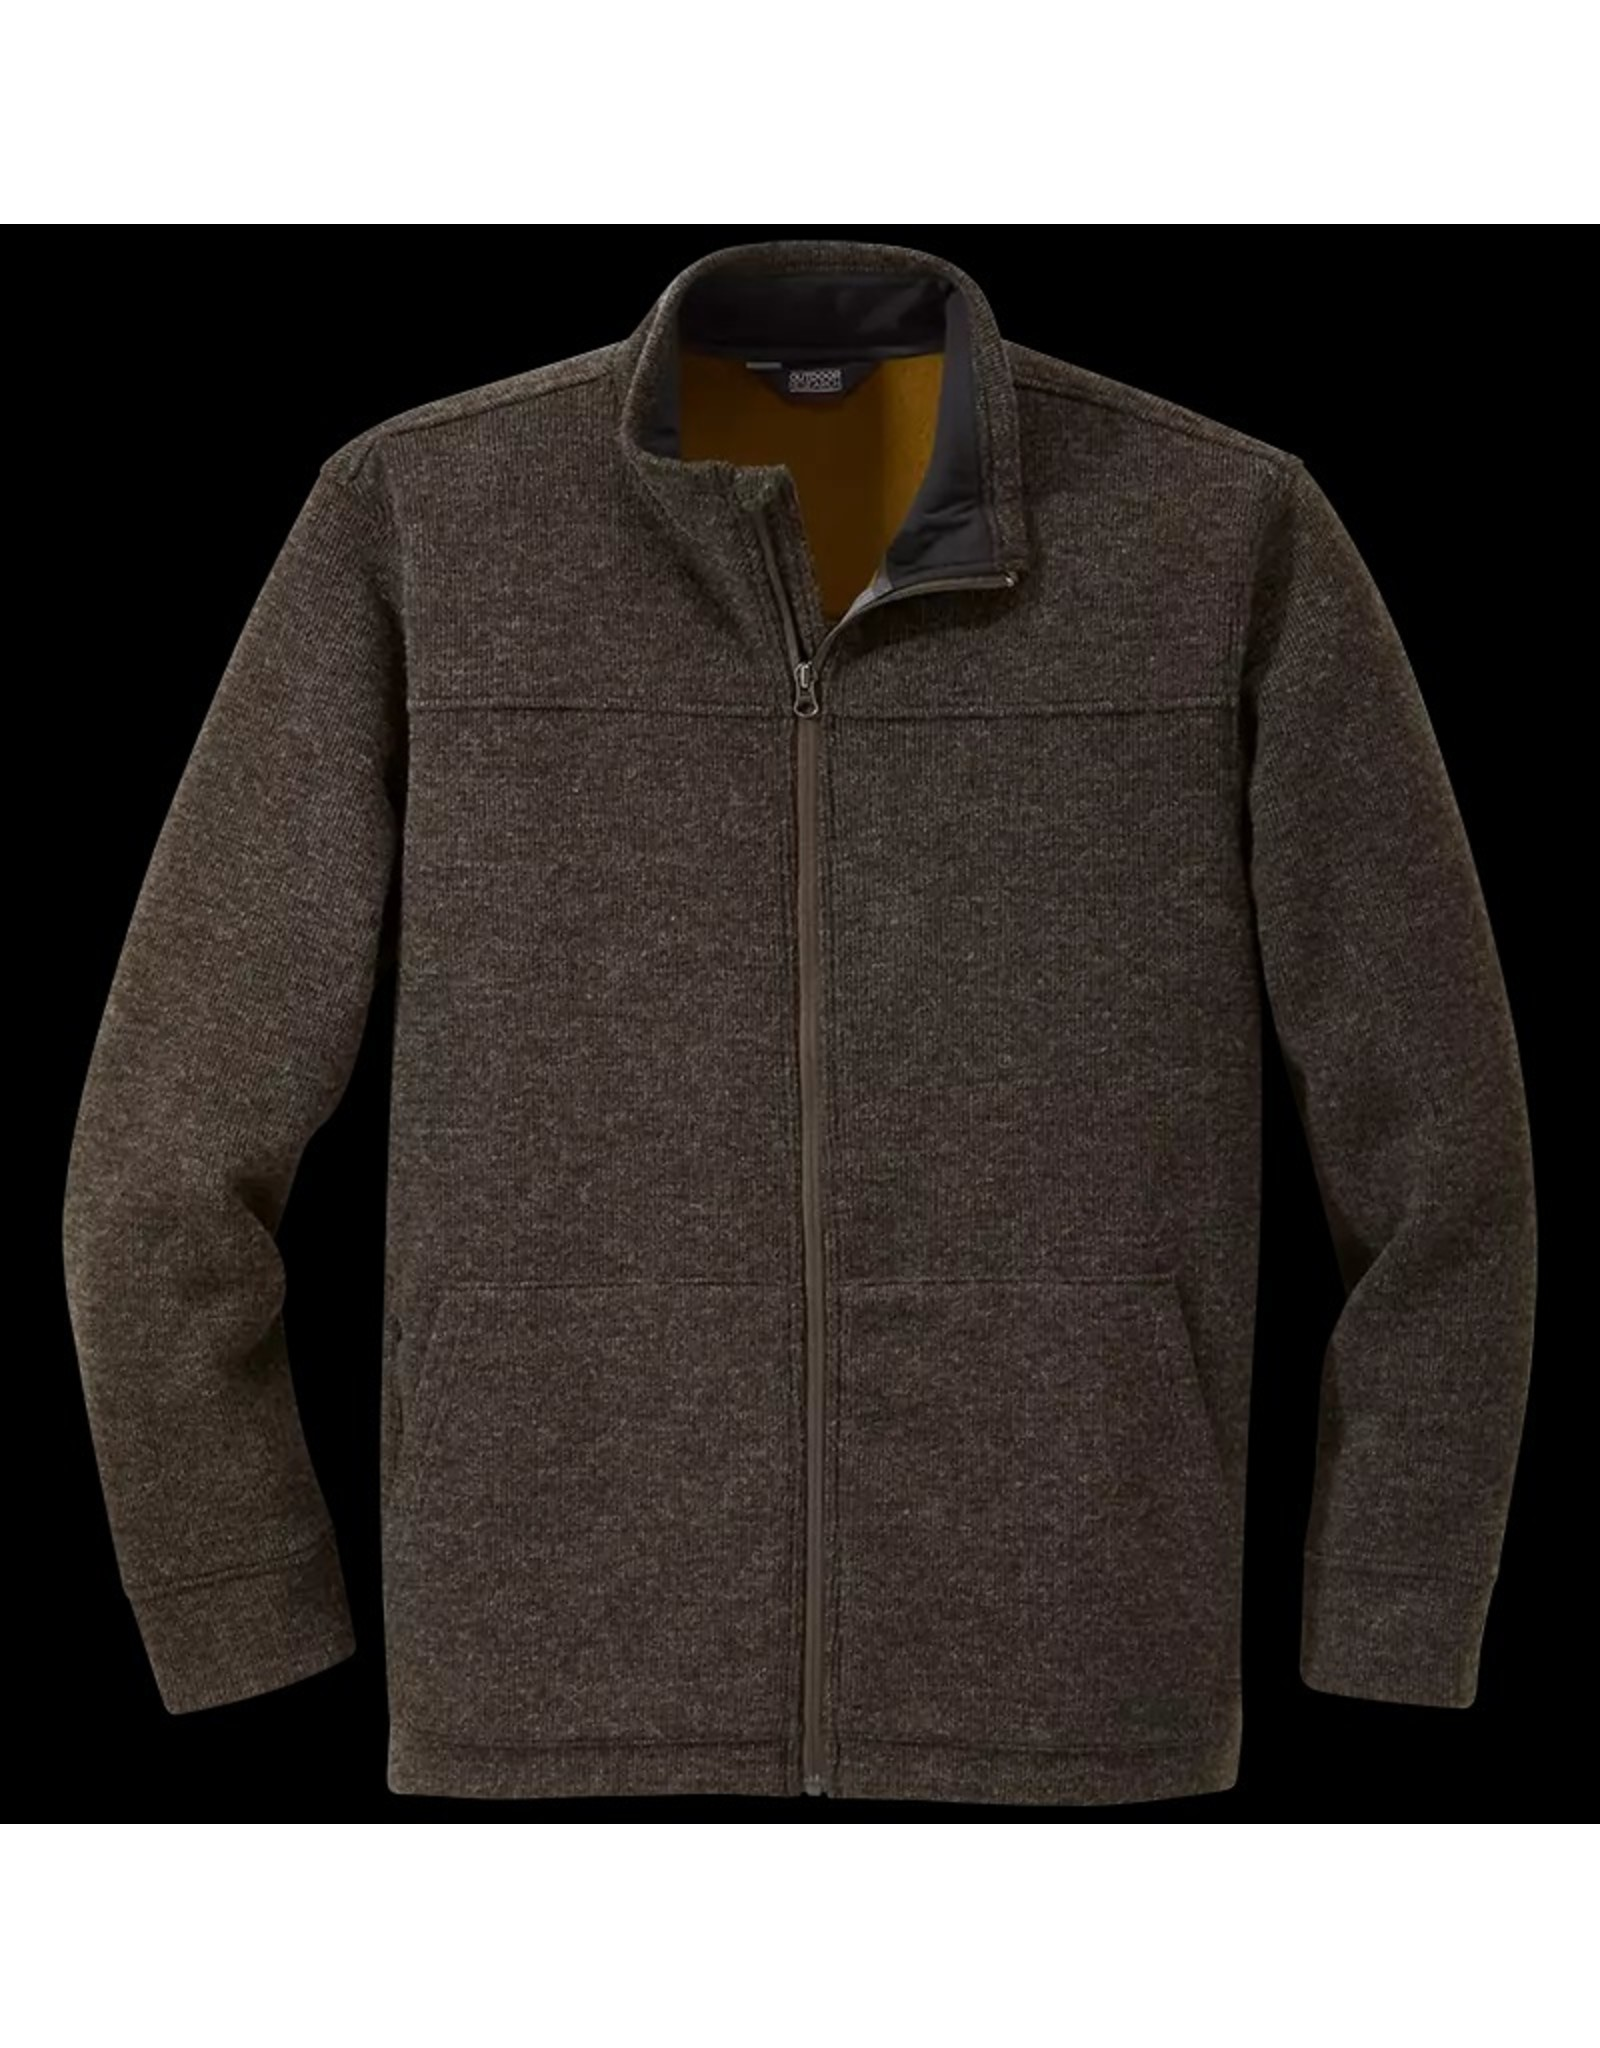 OUTDOOR RESEARCH OR MEN'S FLURRY JACKET